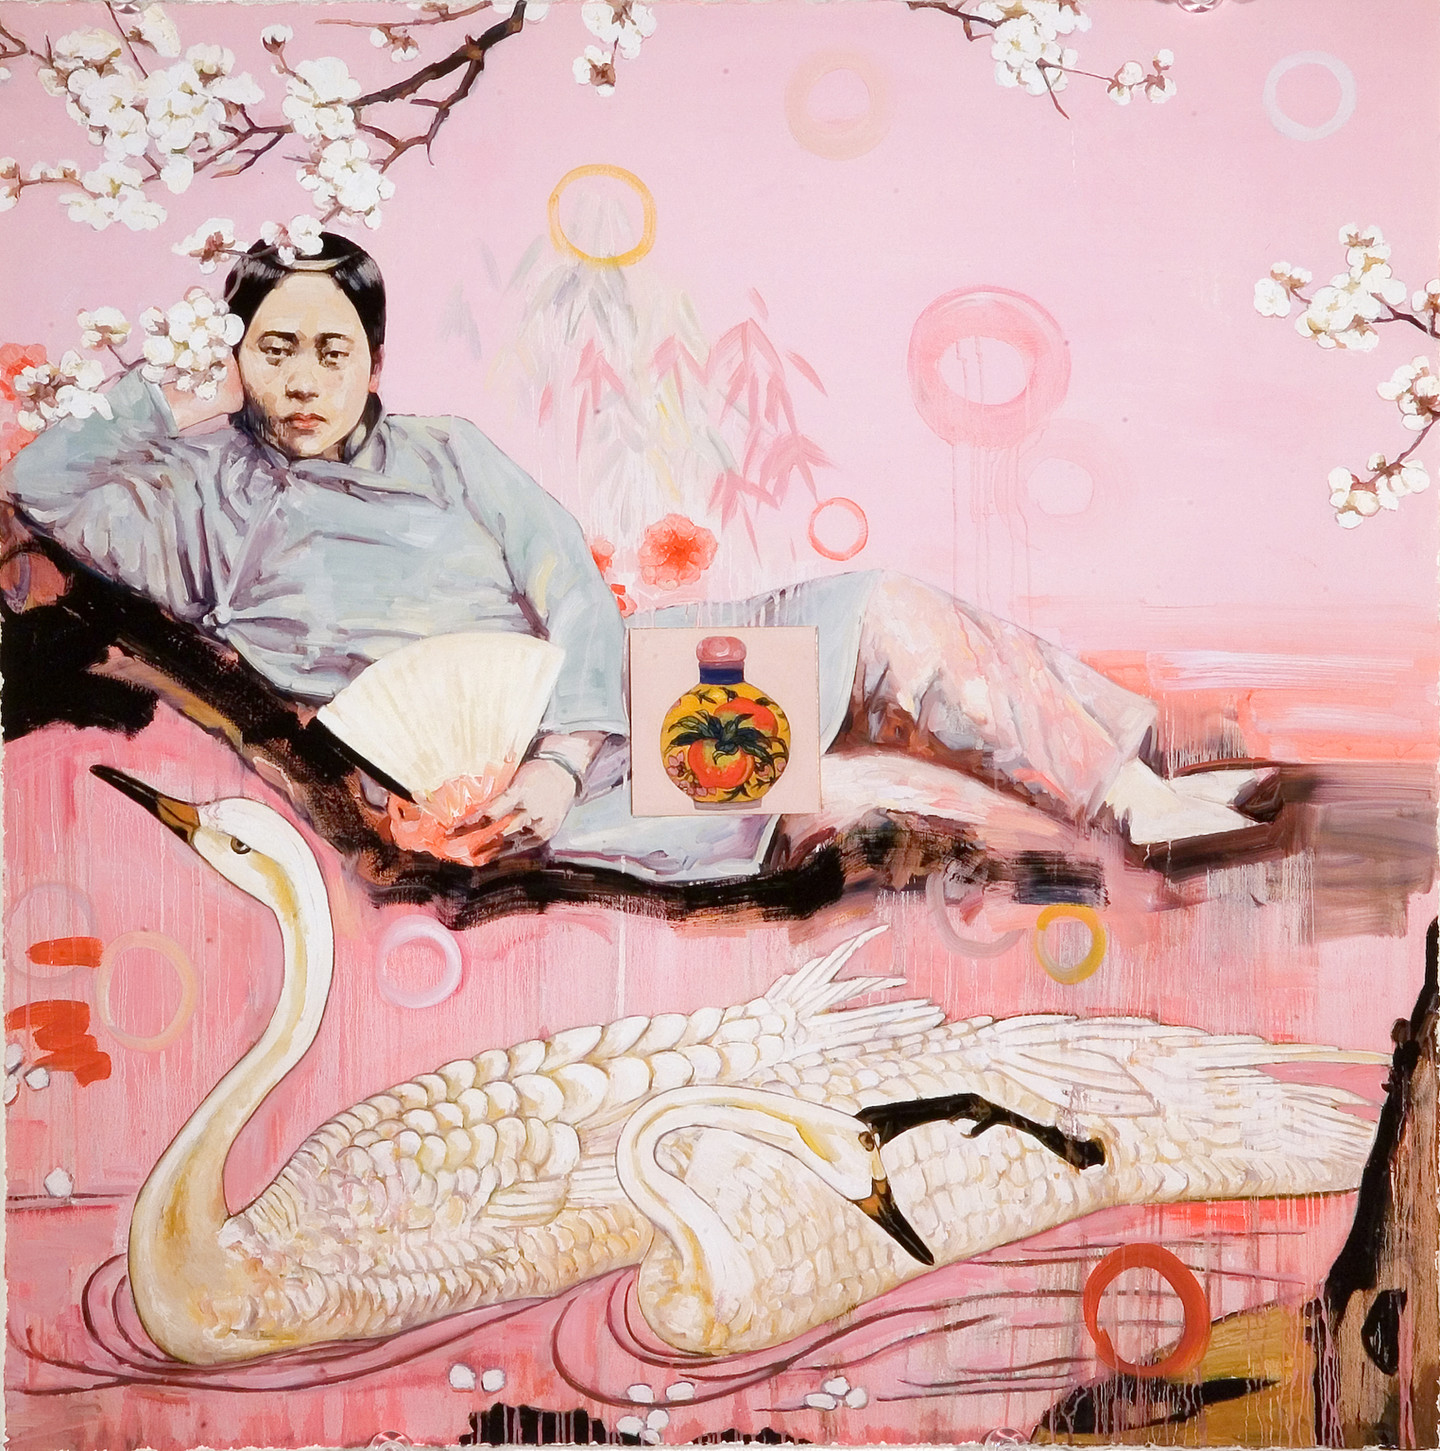 A woman from early 20th century China lounging on her side resting her head on her hand and staring out at the viewer. She appears to be floating against a pale pink background and darker pink foreground with a white swan swimming in front of her.